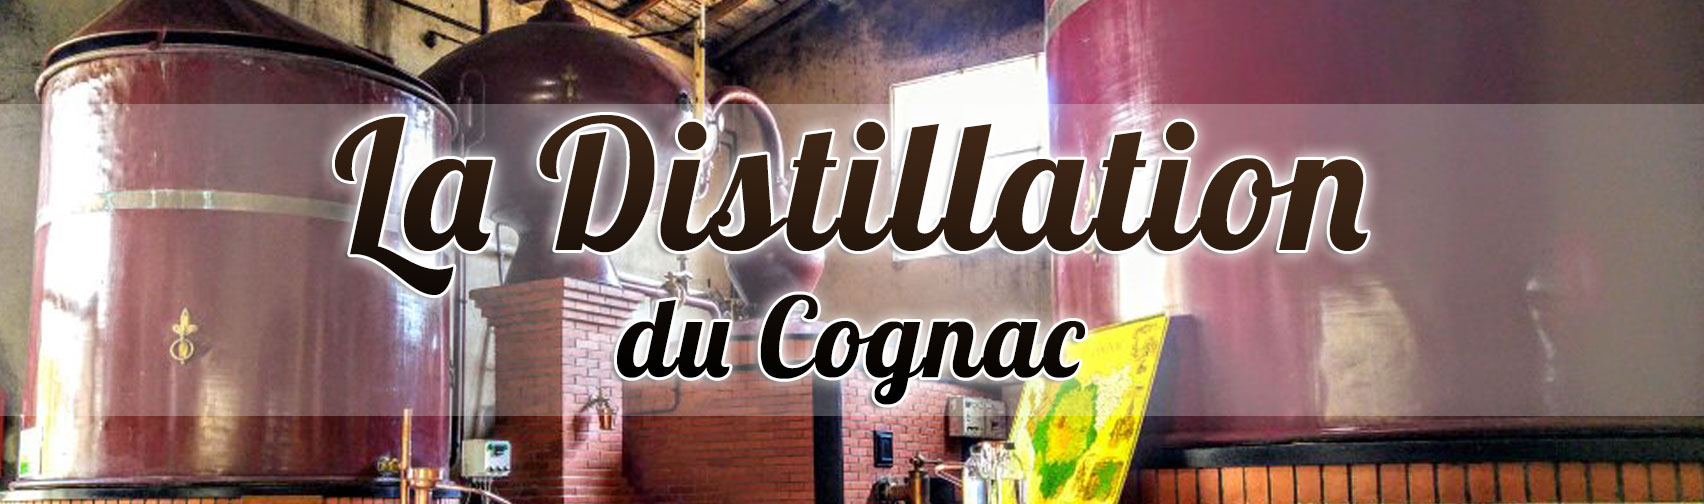 La Distillation du Cognac